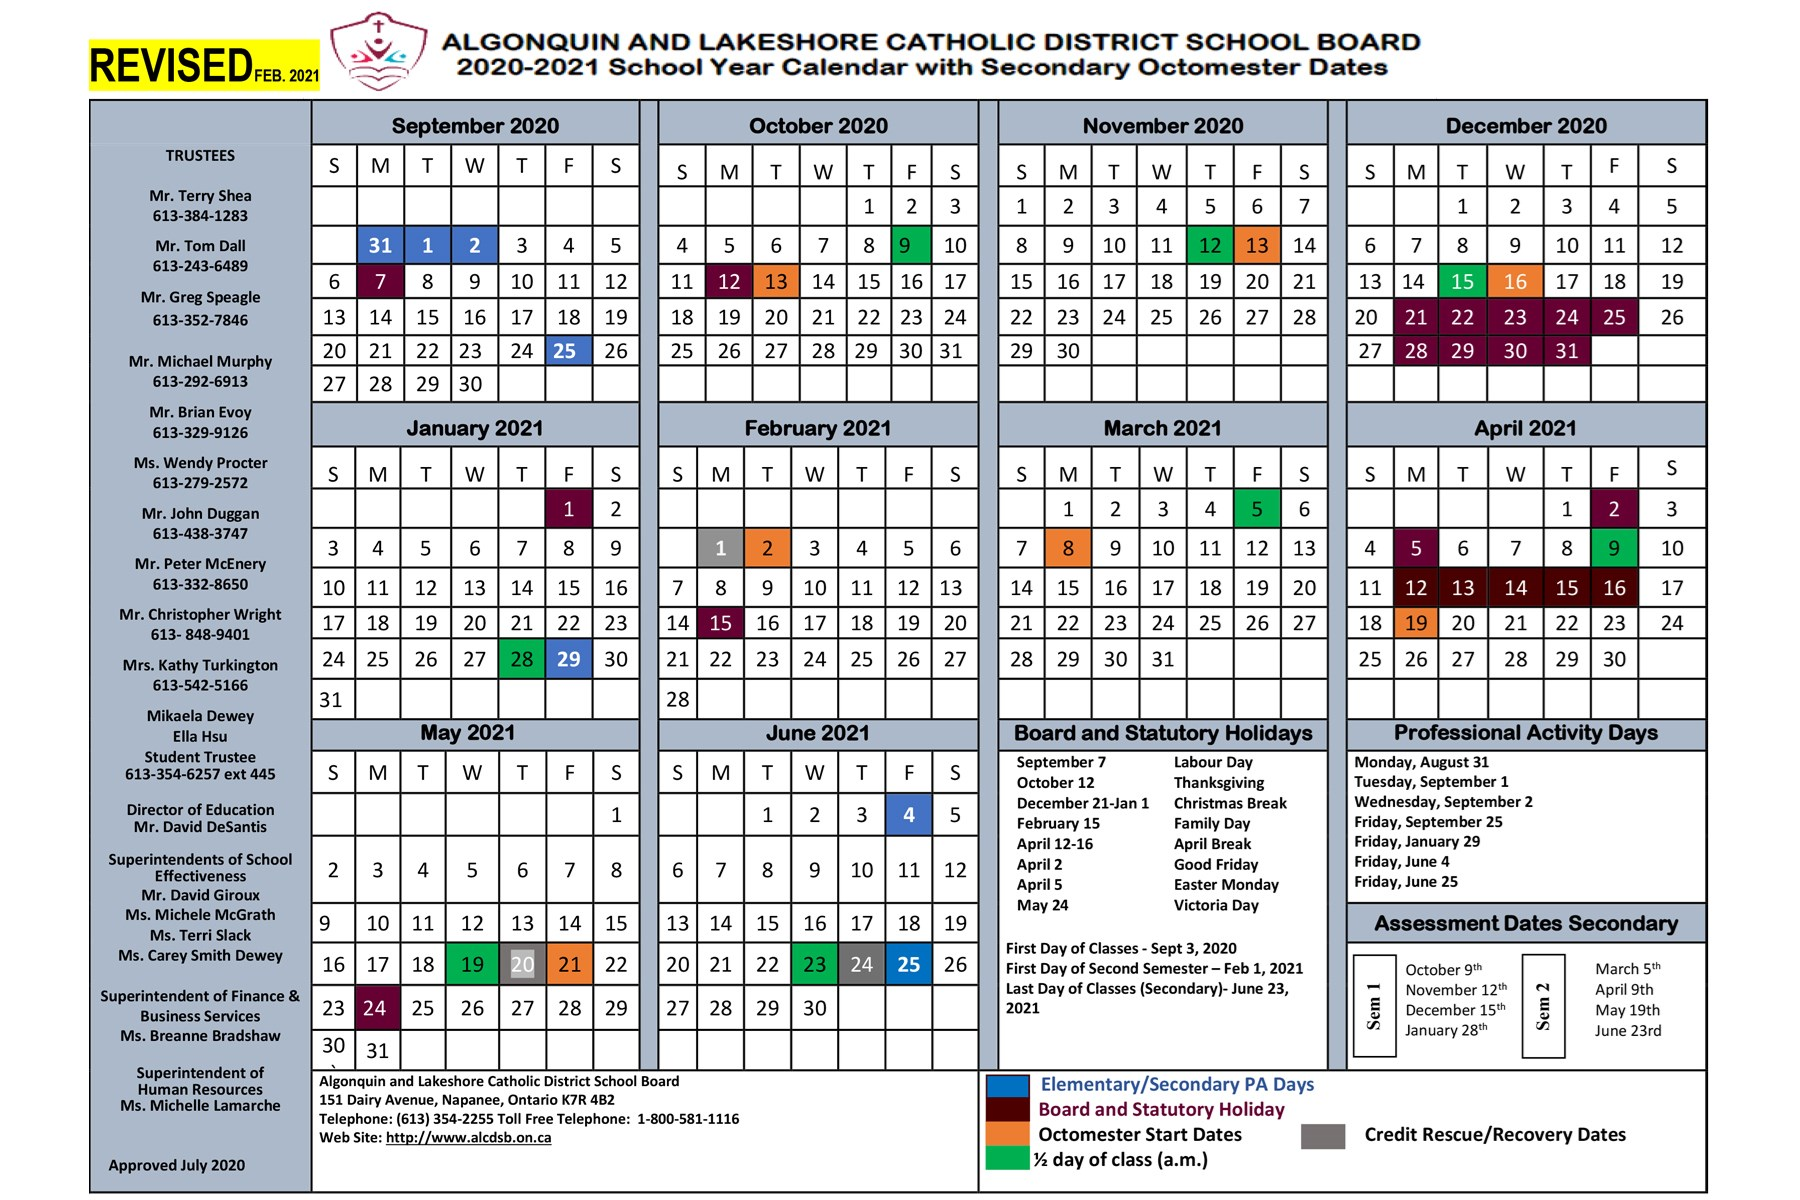 2020-2021 School Year Calendar (Revised February 2021)